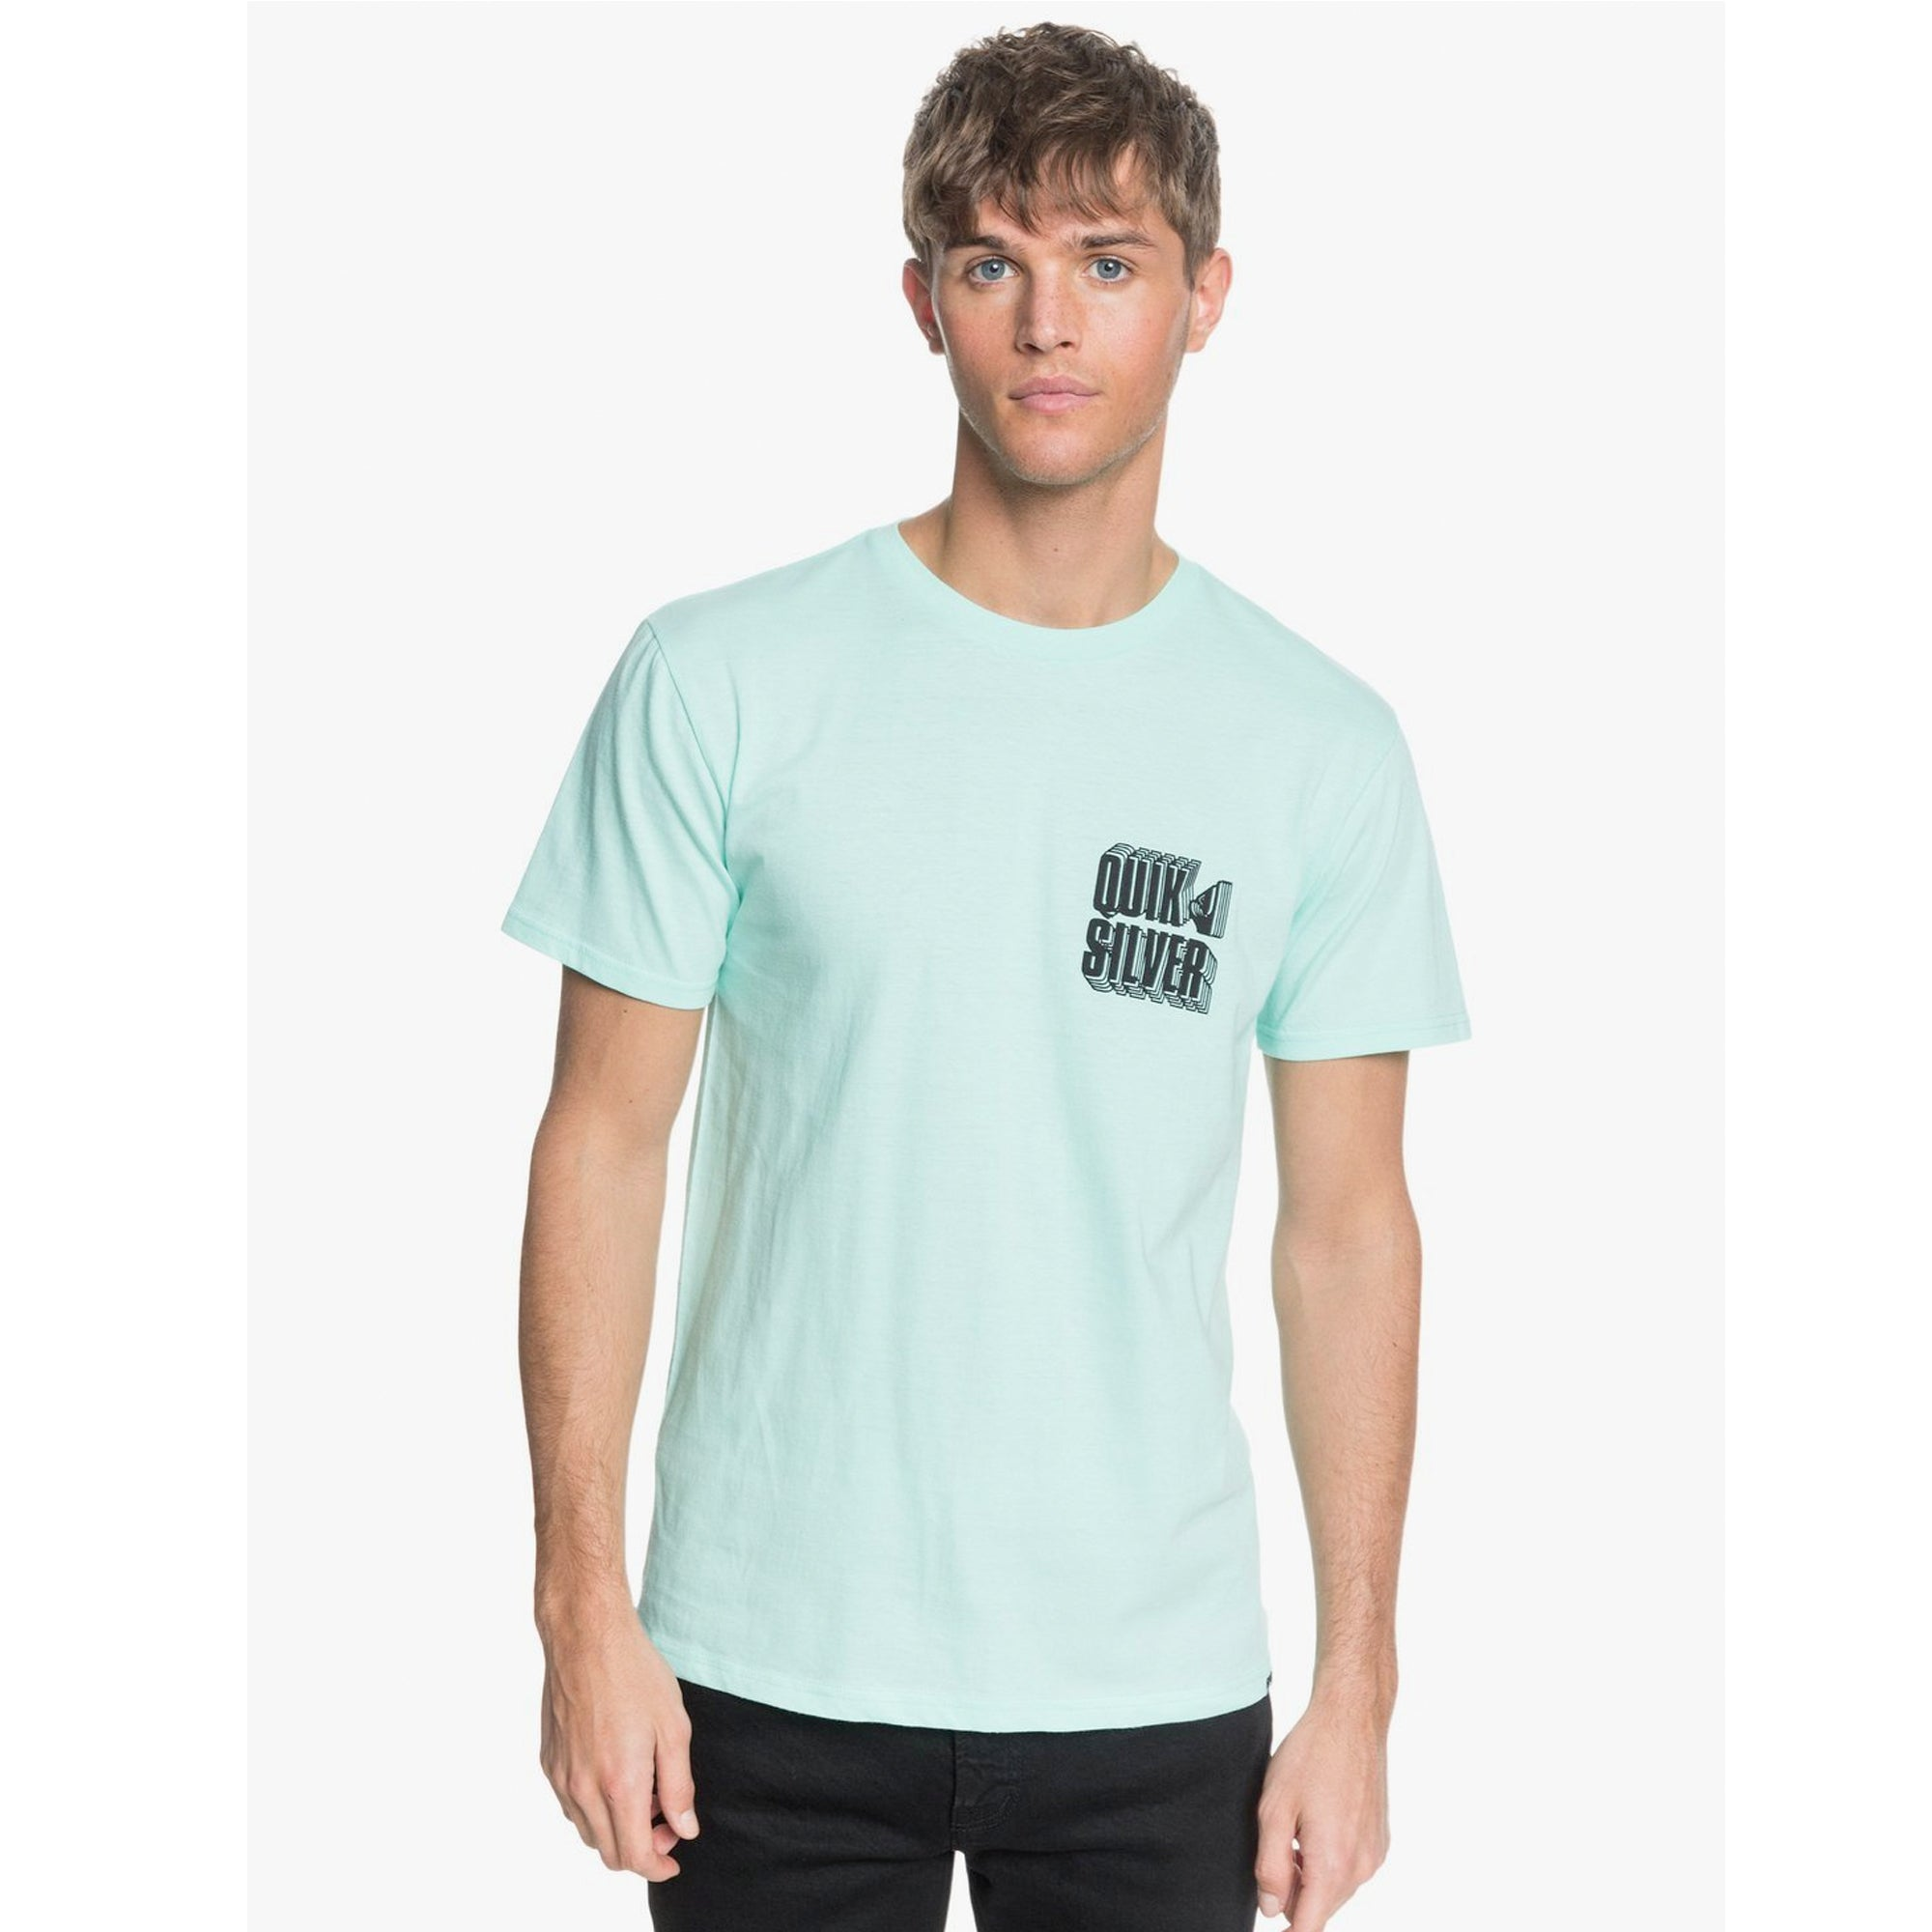 Quiksilver Cryptic Wave Men's S/S T-Shirt